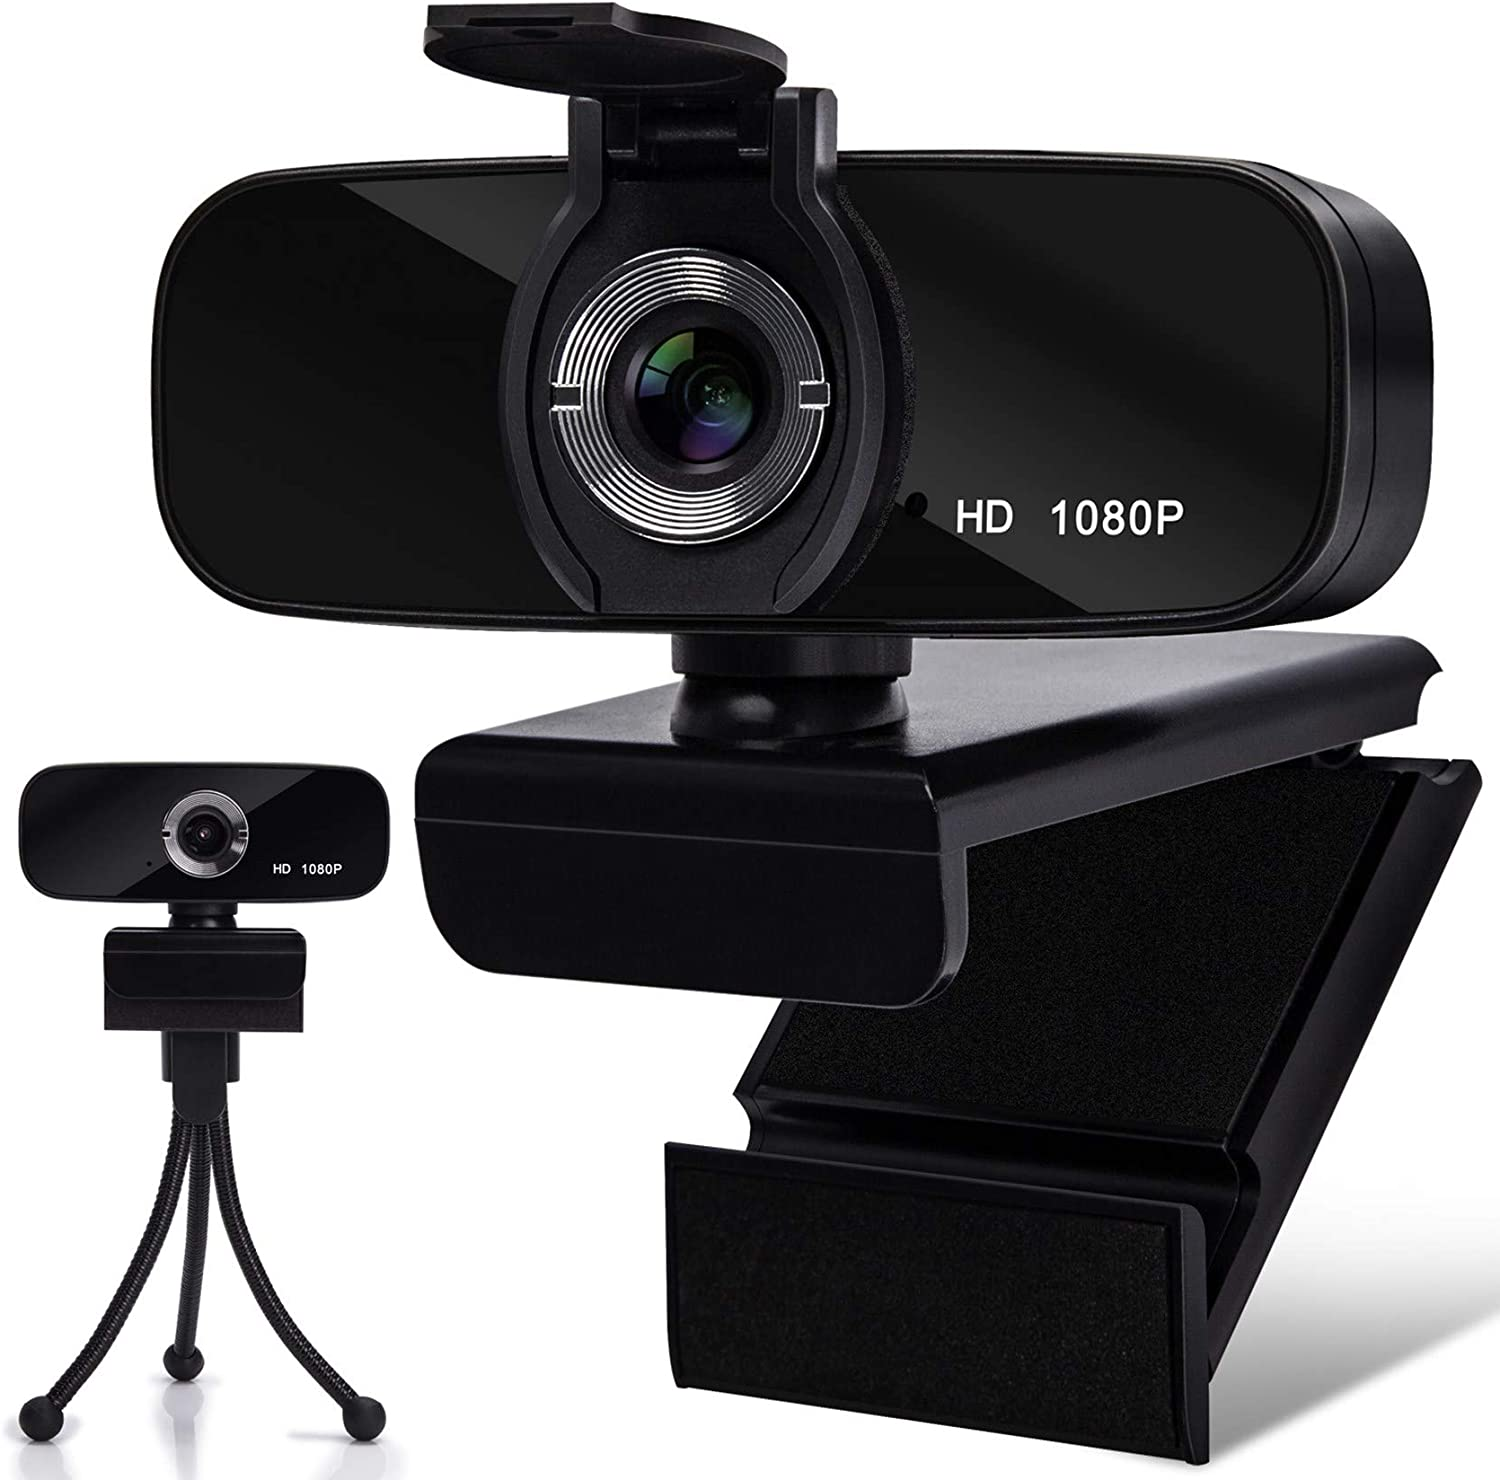 Webcam with Microphone, 1080P HD Webcam with Privacy Cover and Tripod, Computer HD Streaming Webcam, USB Web Camera for Calling & Recording Conferencing/Business Meeting/Gaming